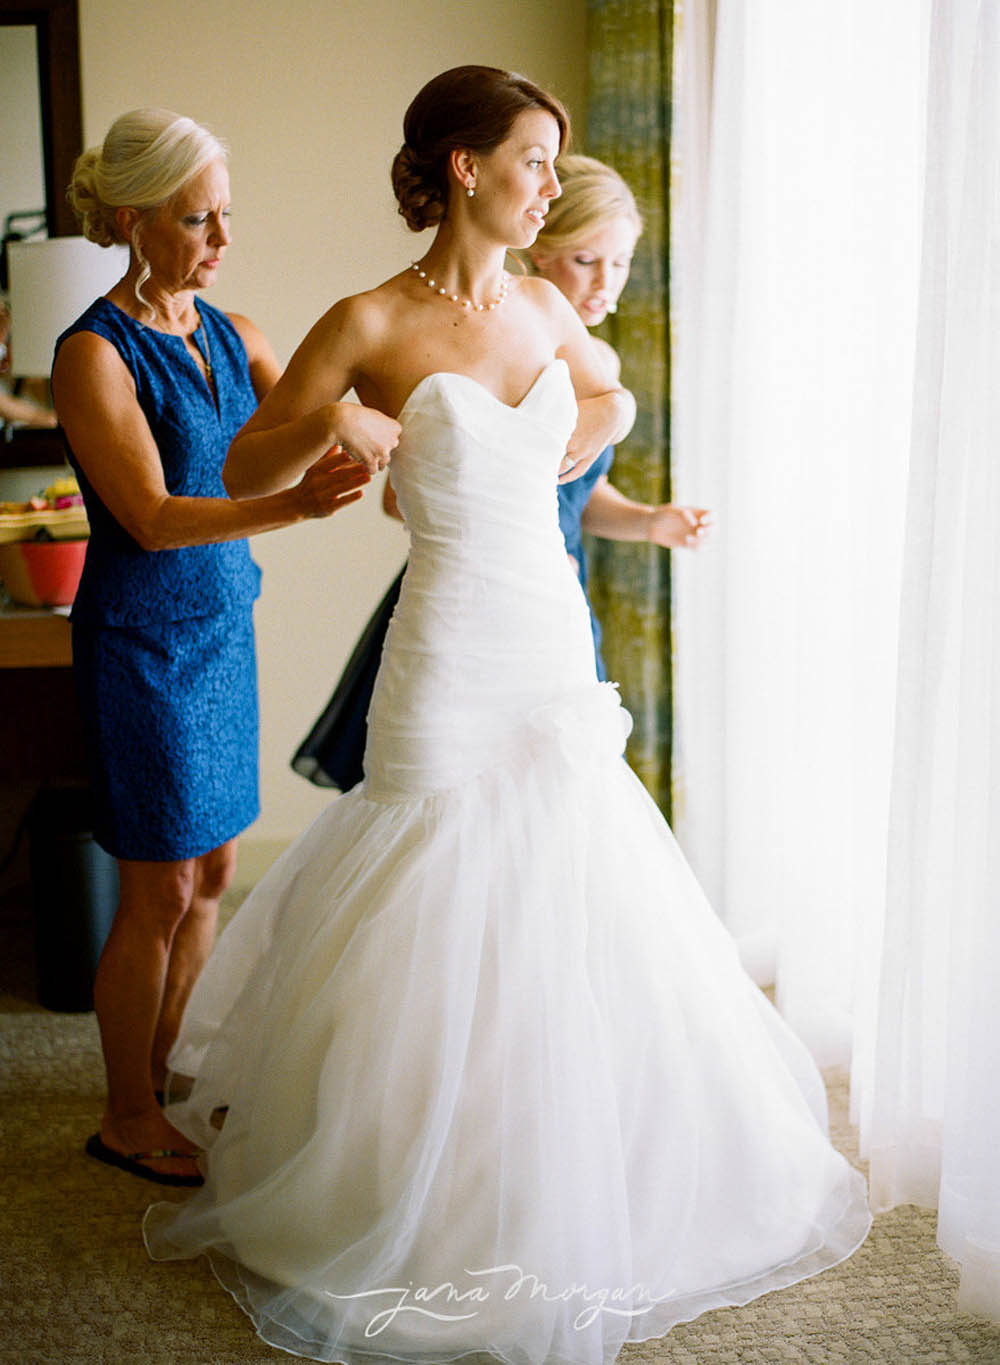 bridal-getting-ready-planning-destination-wedding.jpg